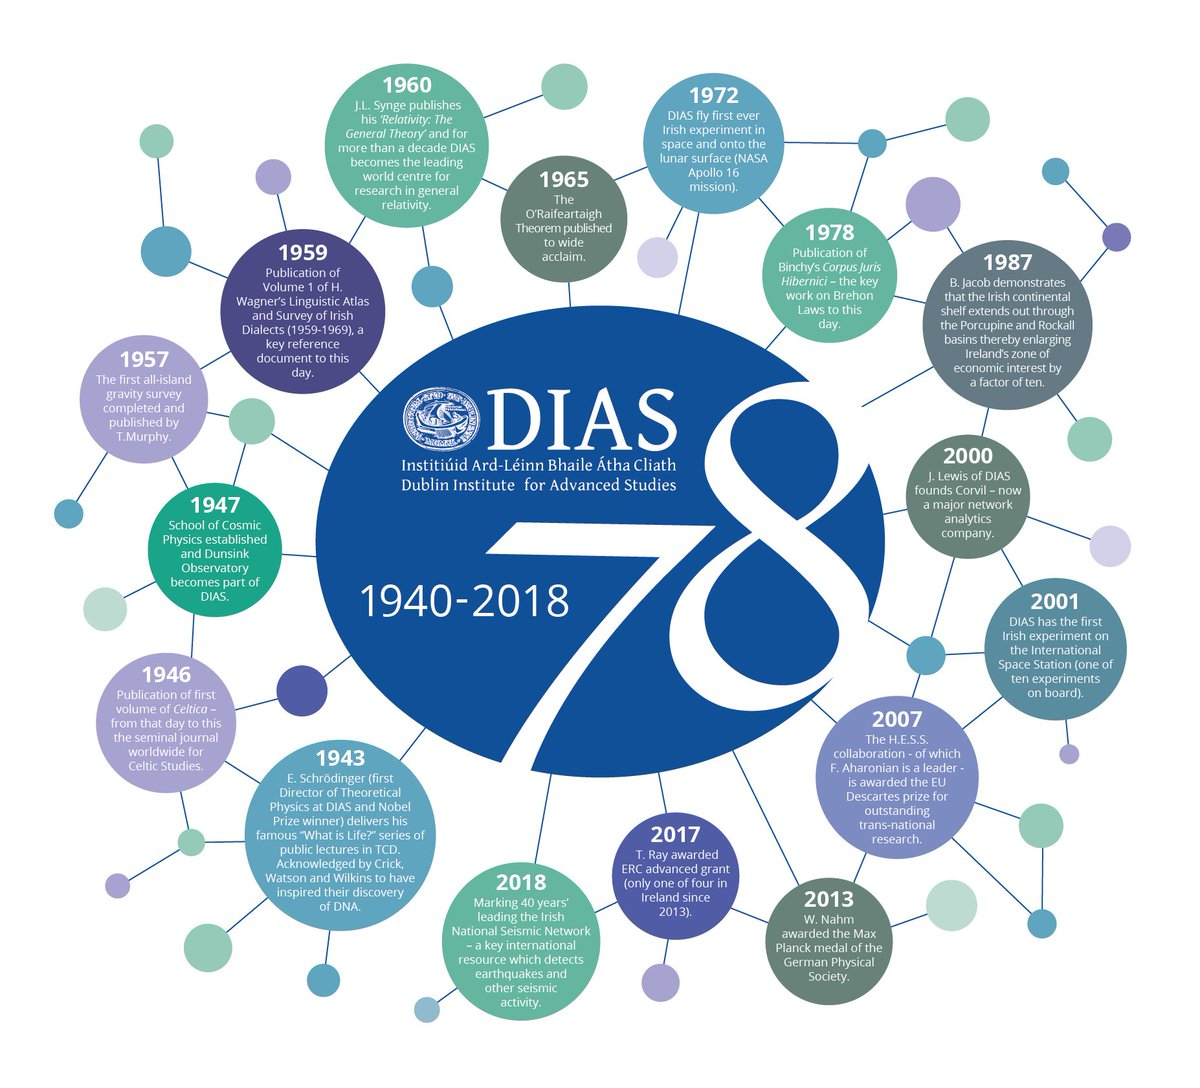 test Twitter Media - Today we're marking #DIASday as we celebrate 78 years of the Dublin Institute for Advanced Studies! Here is just a small selection of some highlights from down through the years #DIASDiscovers https://t.co/fiTBB9Ntrz